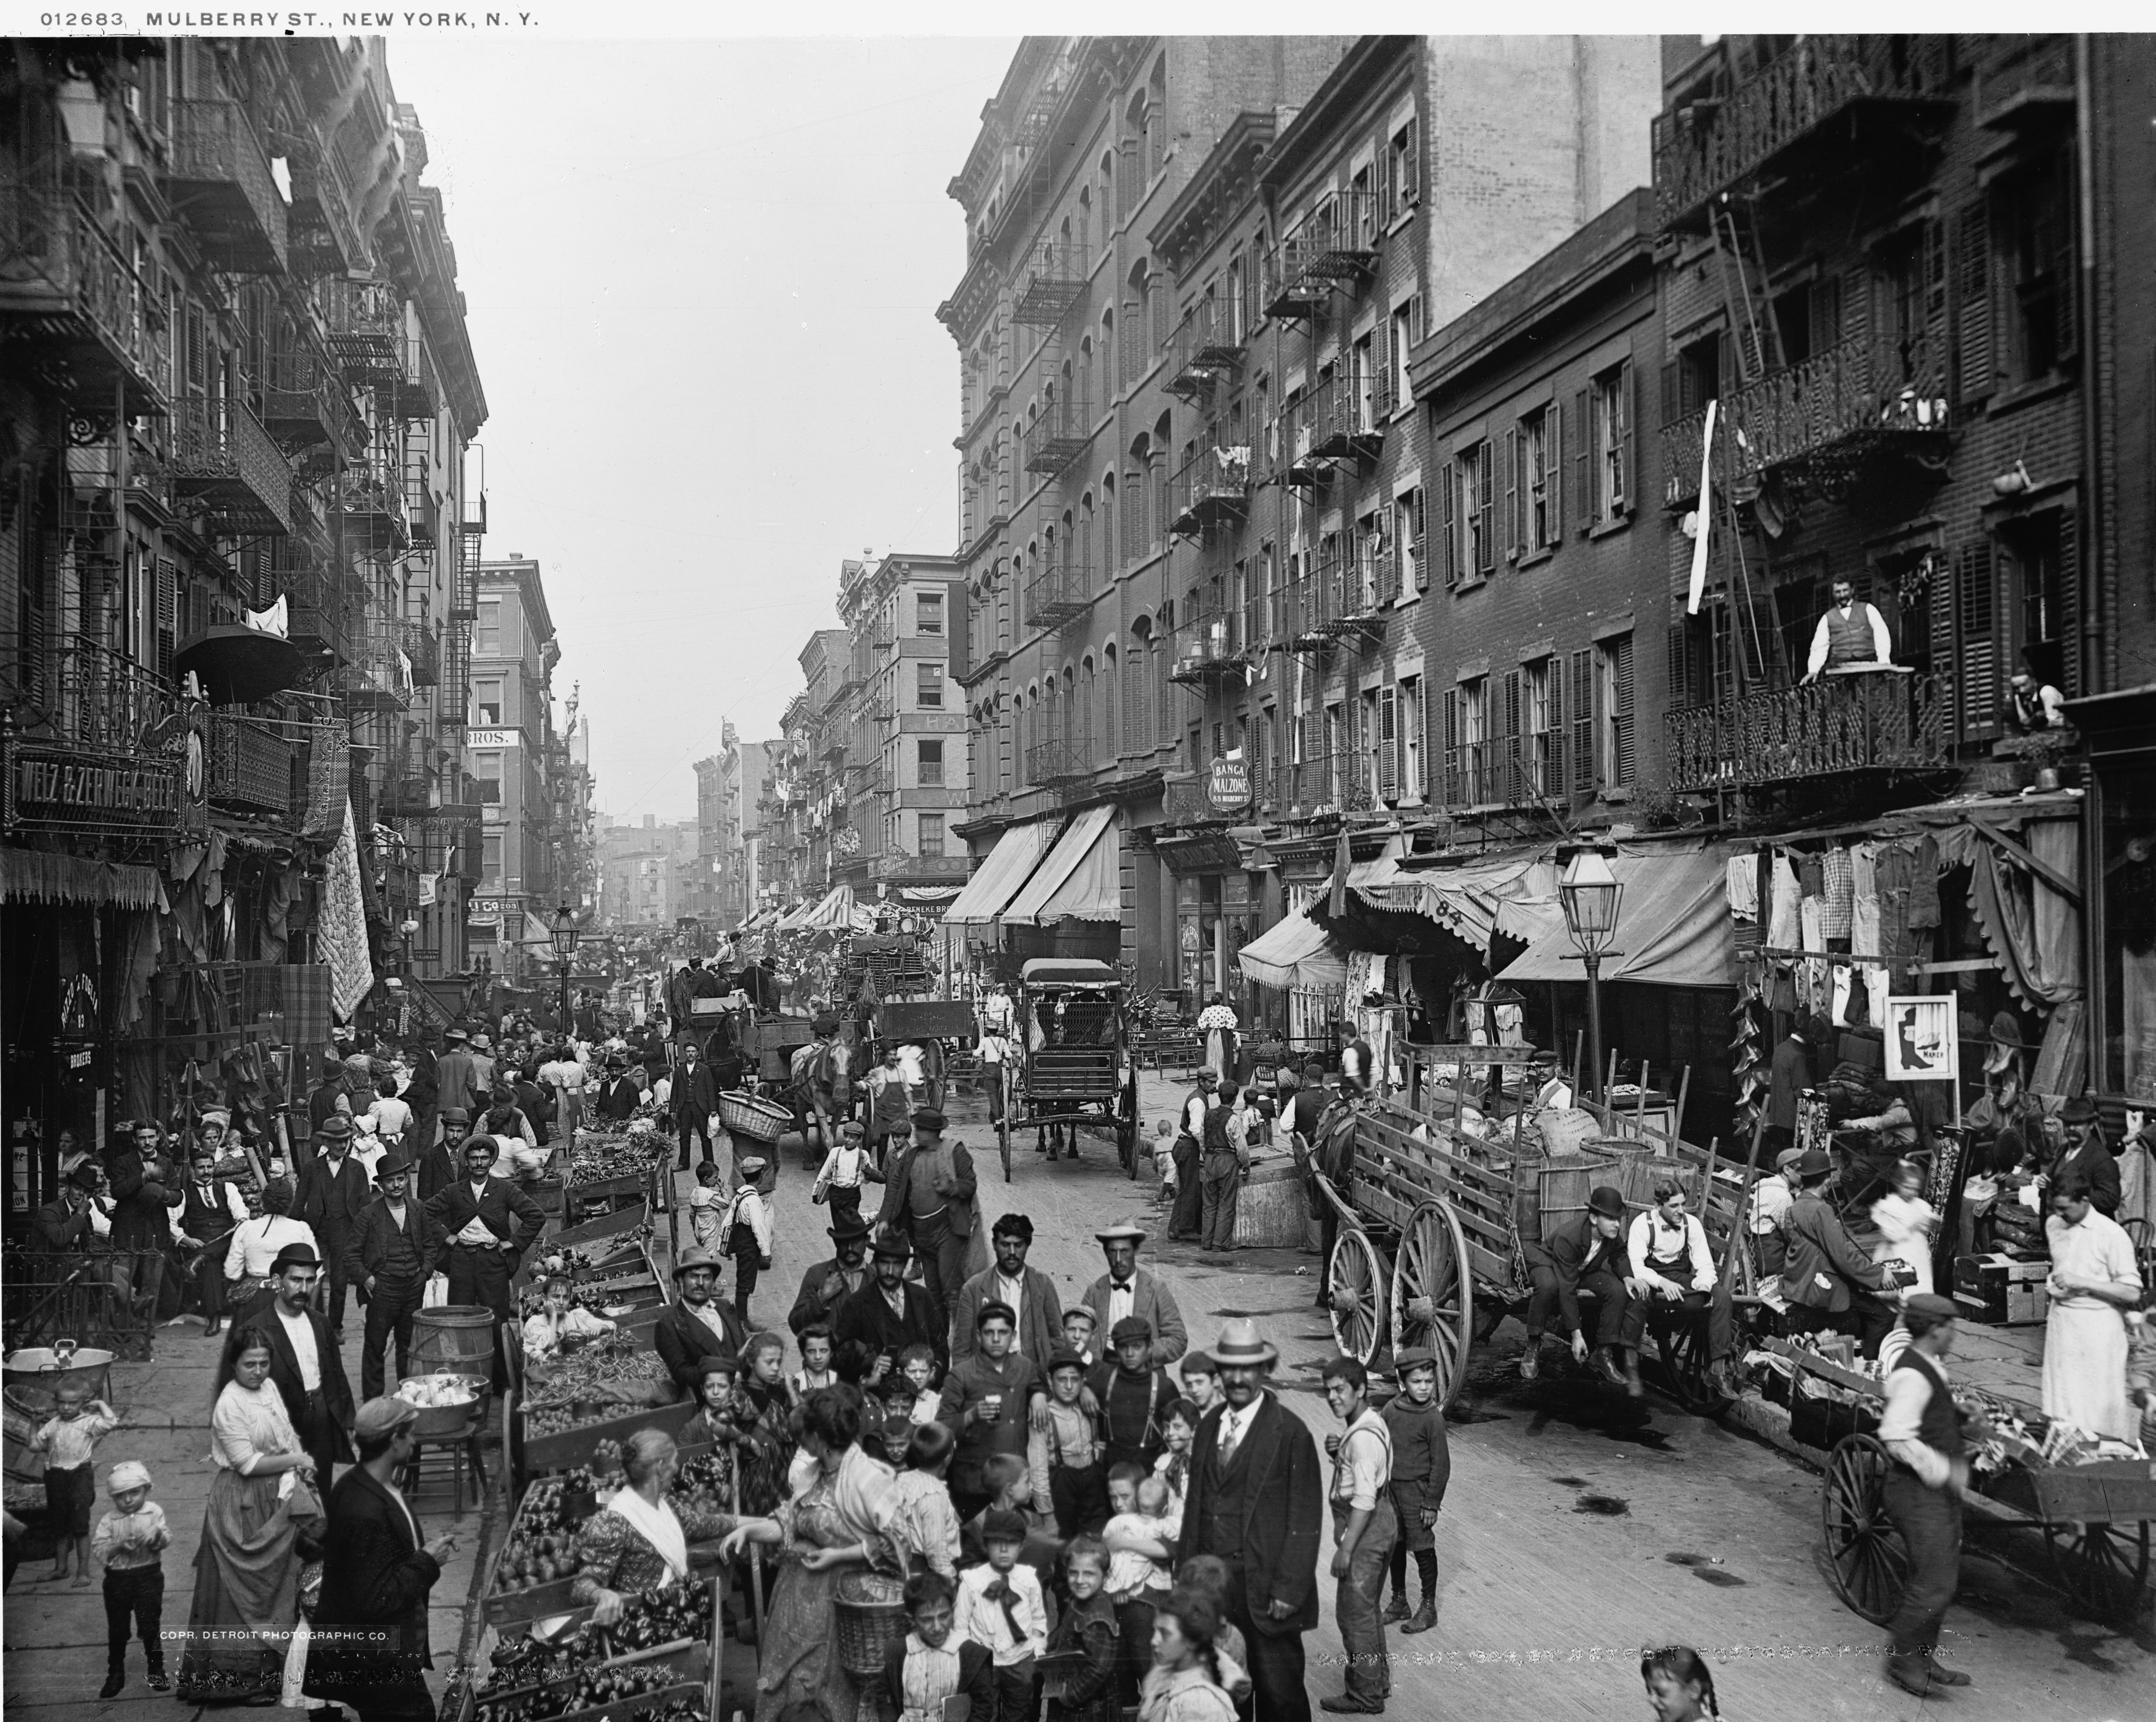 New York's Little Italy Described In 1898